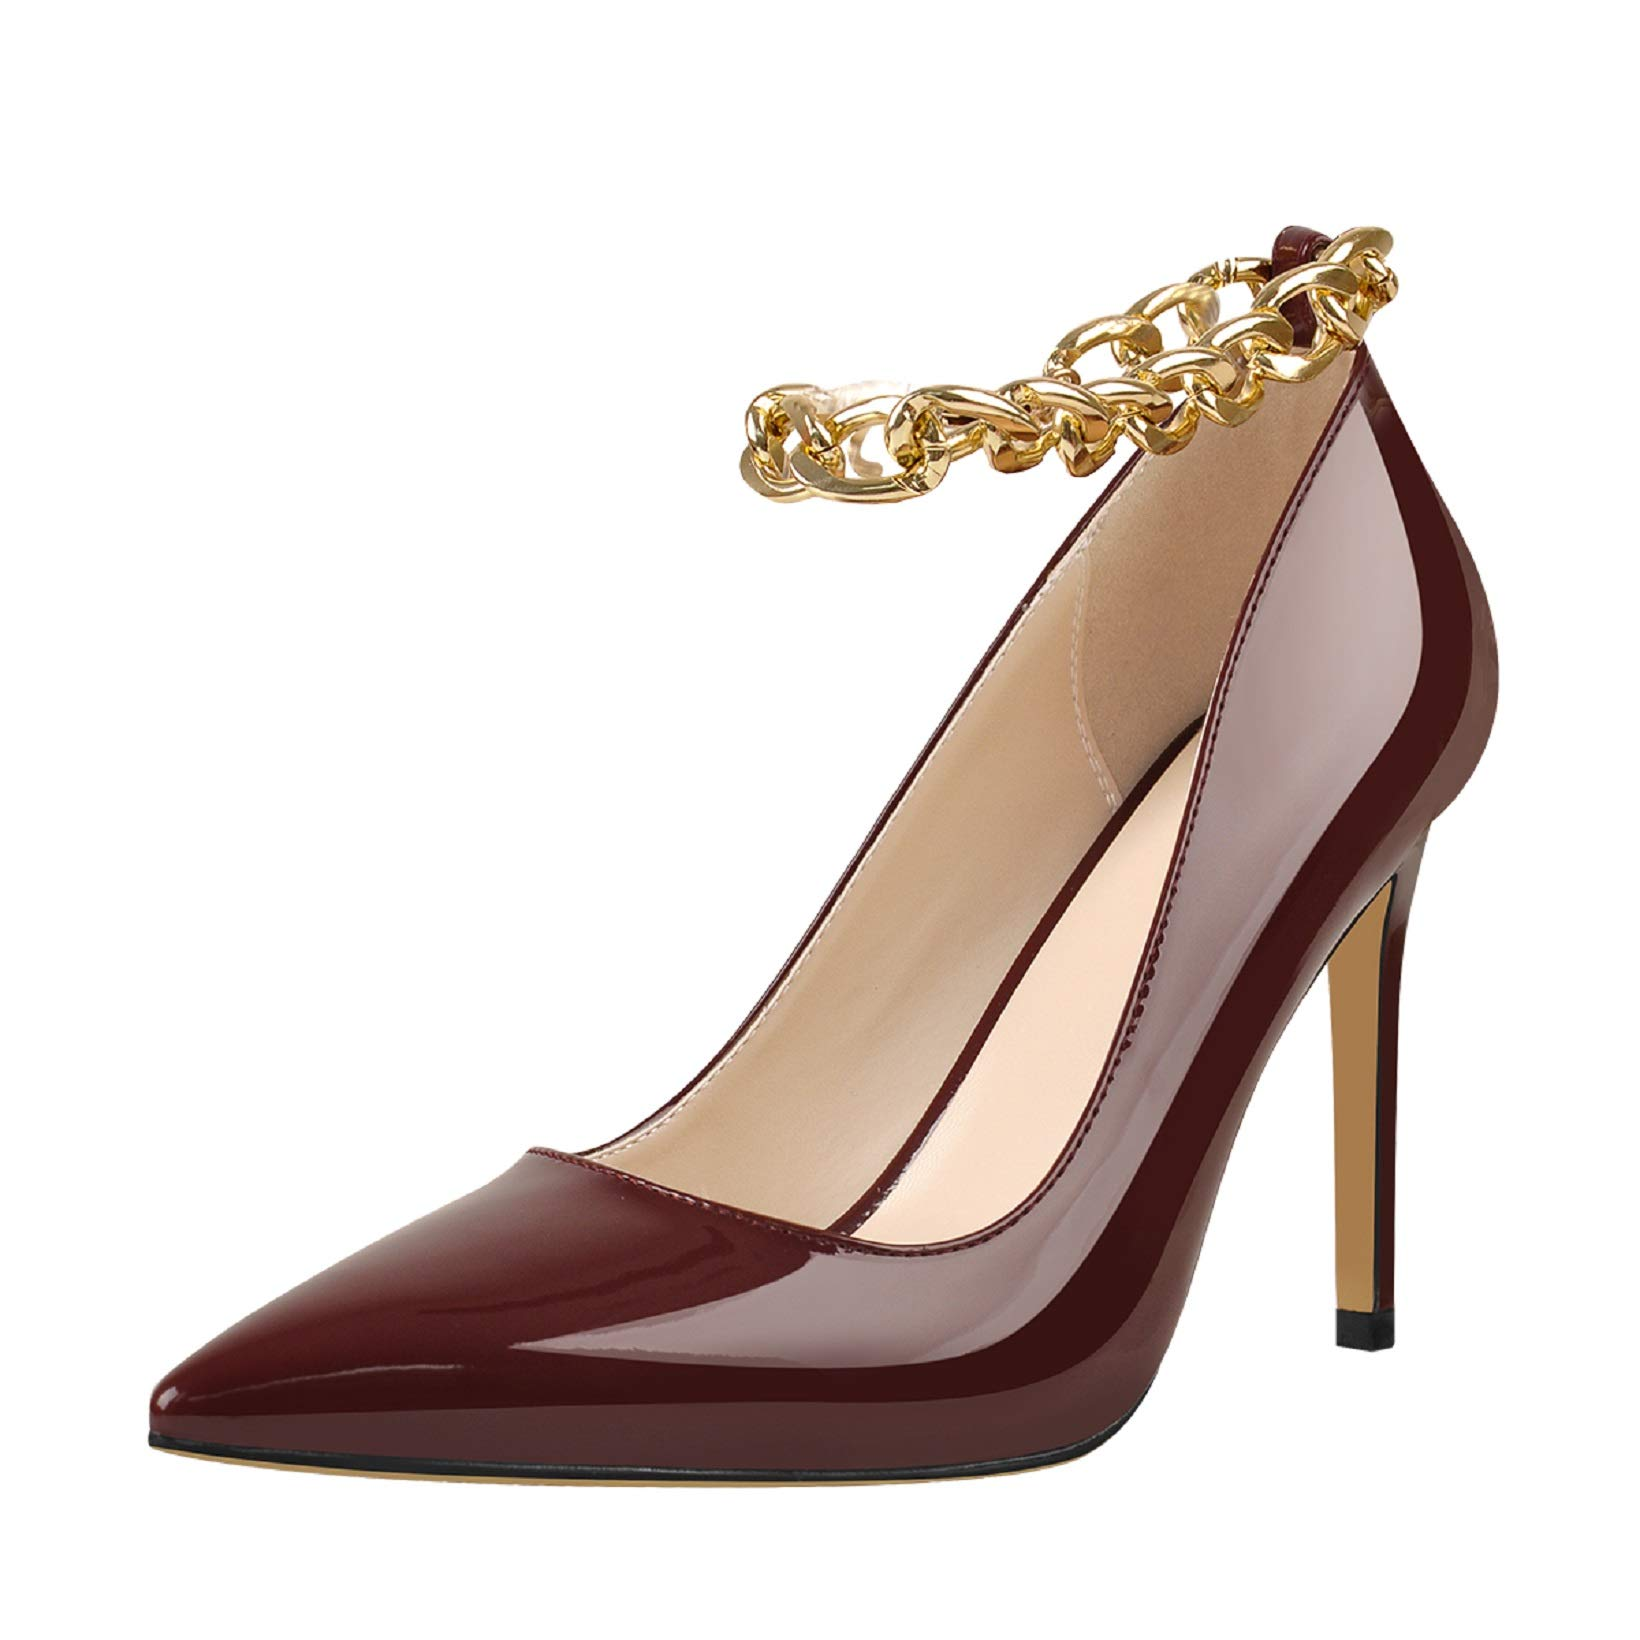 Yolkomo Womens Pumps Pointy Toe High Heels Metal Chain Pumps for Women